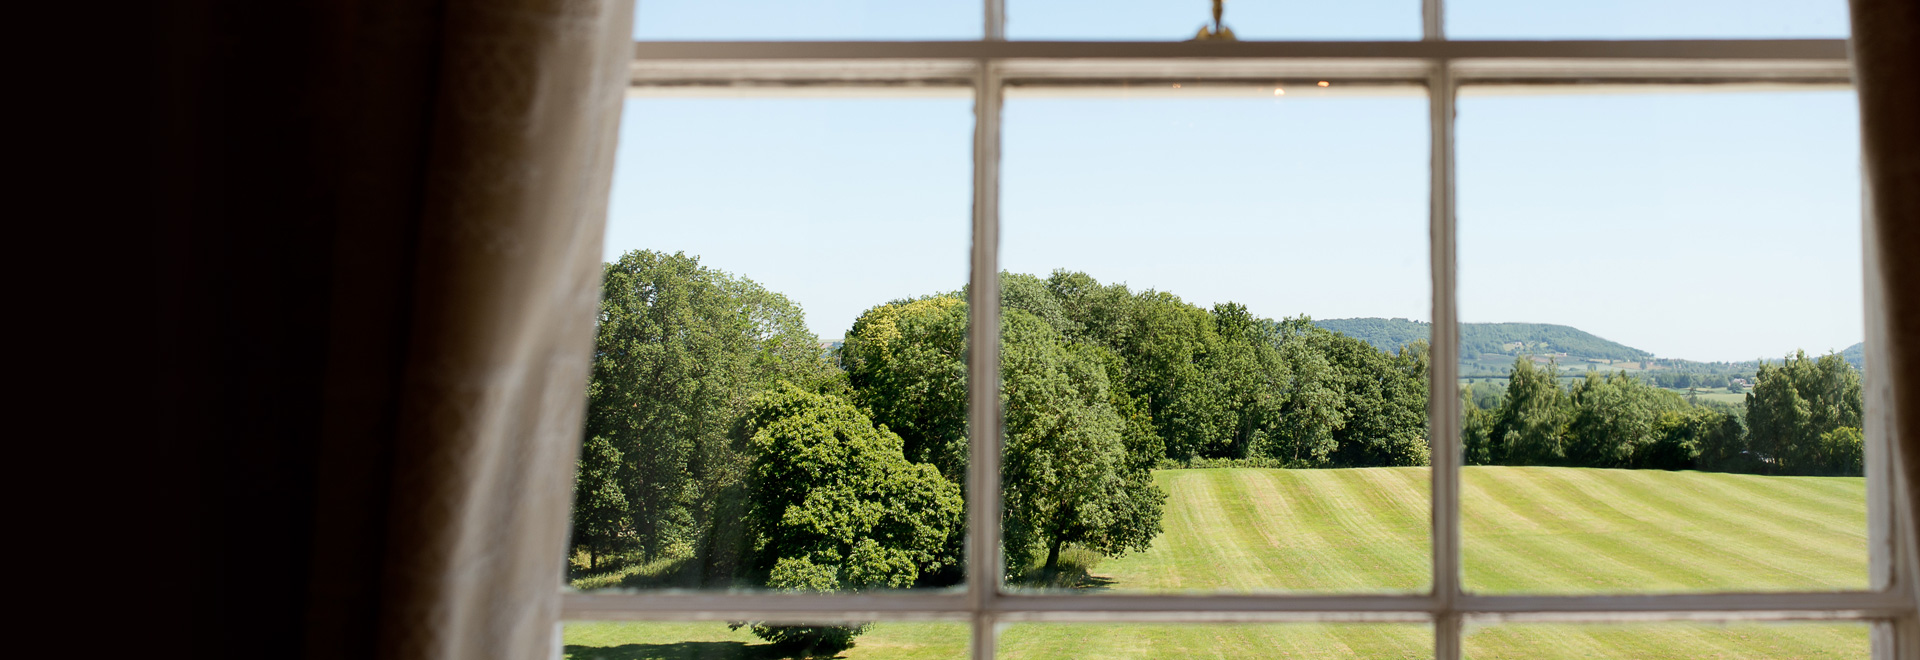 Room with a view over the surrounding Herefordshire countryside - Russell Lewis Photography